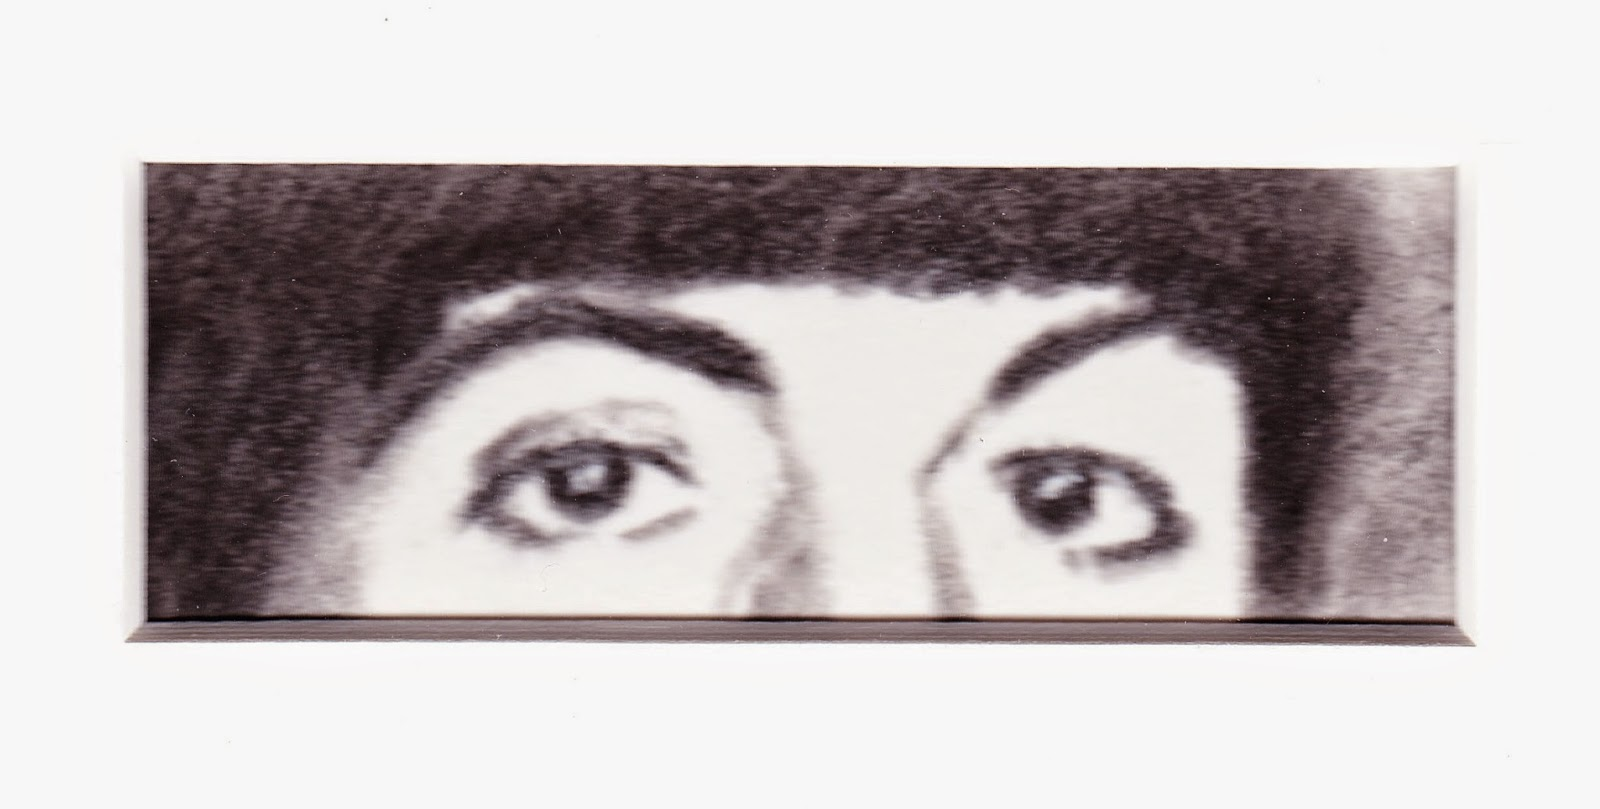 Eyes of Paul McCartney by F. Lennox Campello